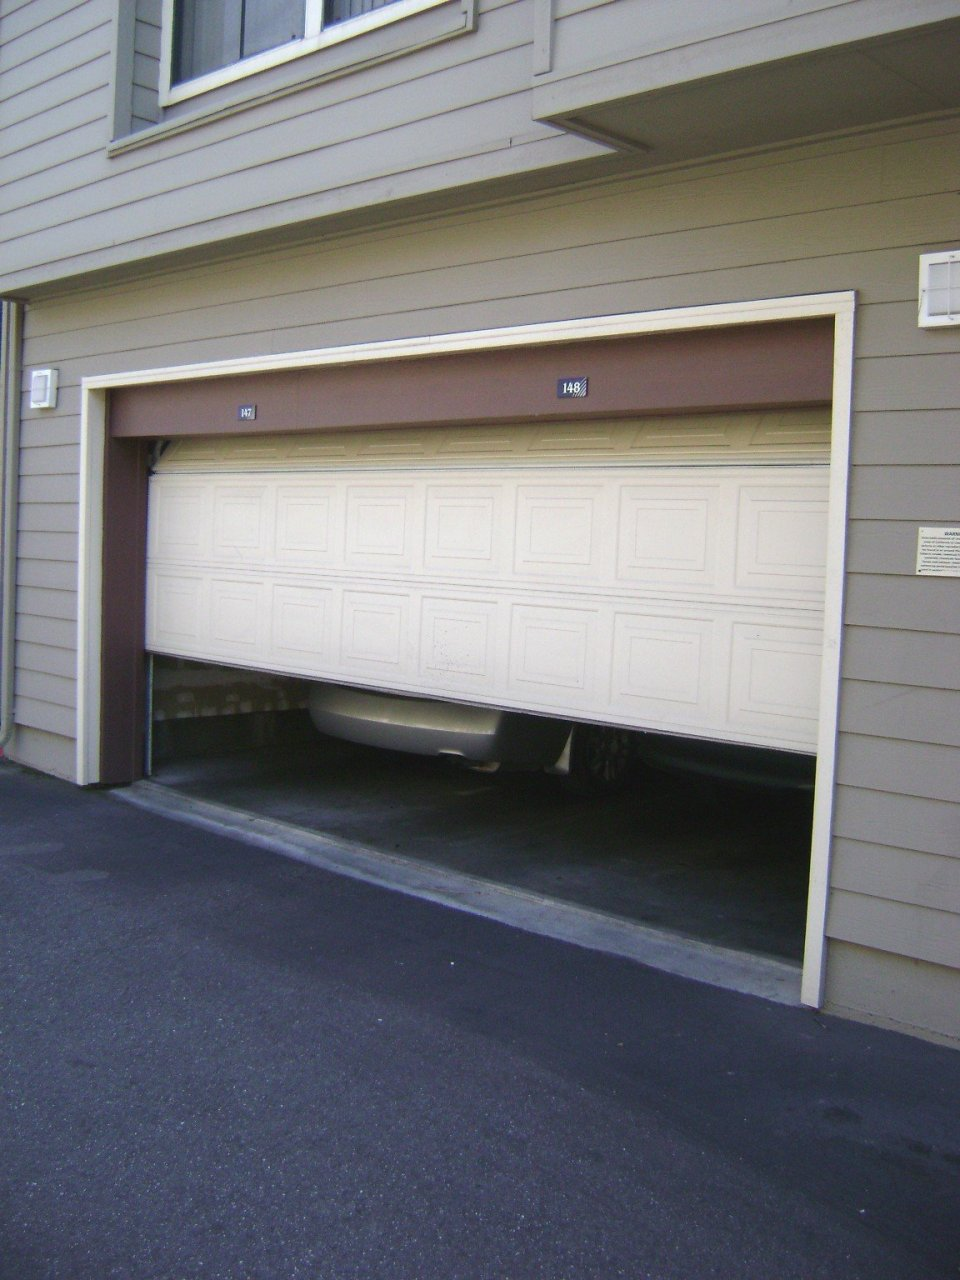 ... Garage Door Wonu0027t Close All The Way.  Garage_door_sliding_up Alknwpb0sn